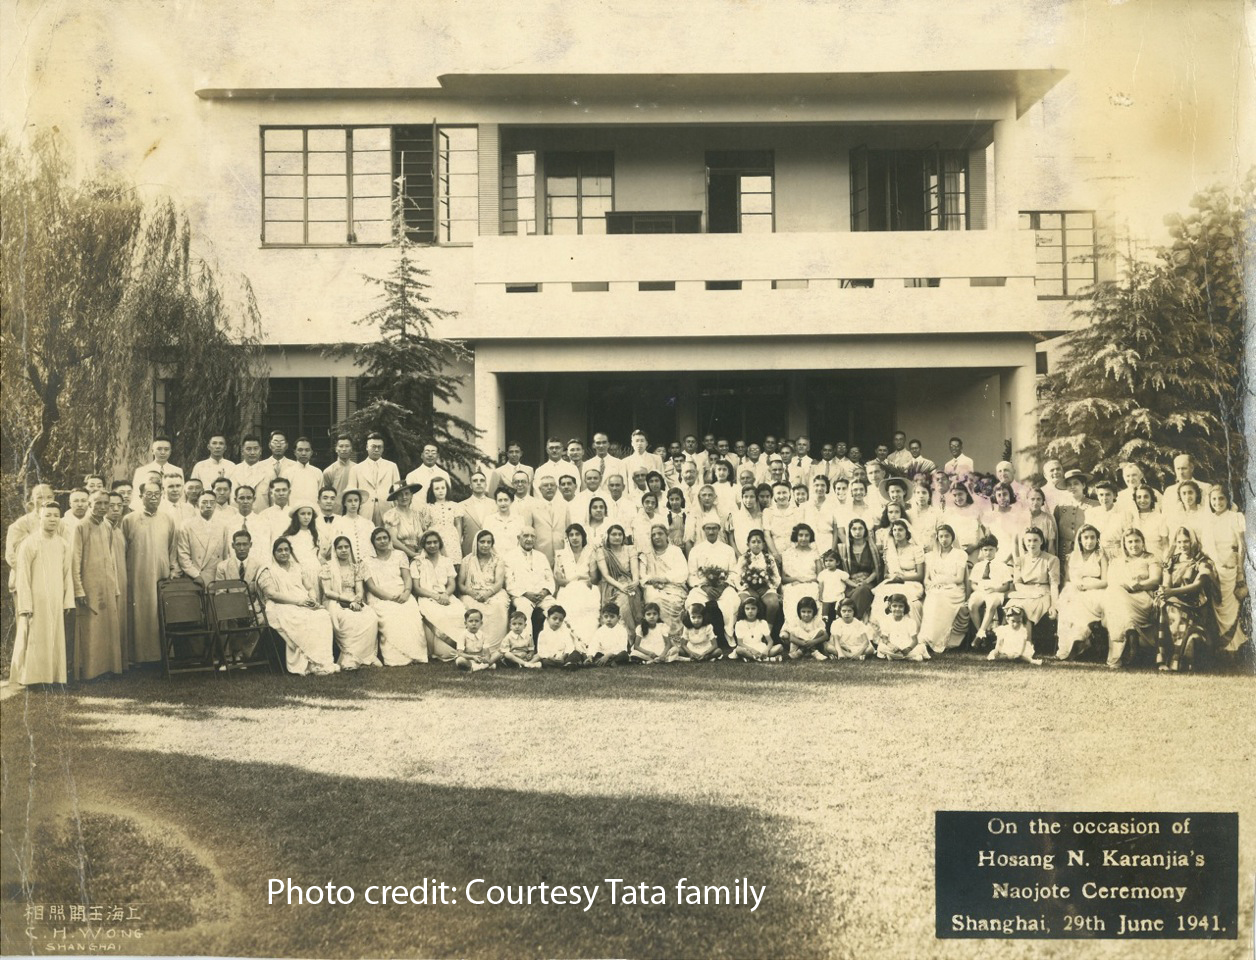 Exclusive: A shared history – The Tatas in ShanghaiExclusive: A shared history – The Tatas in Shanghai